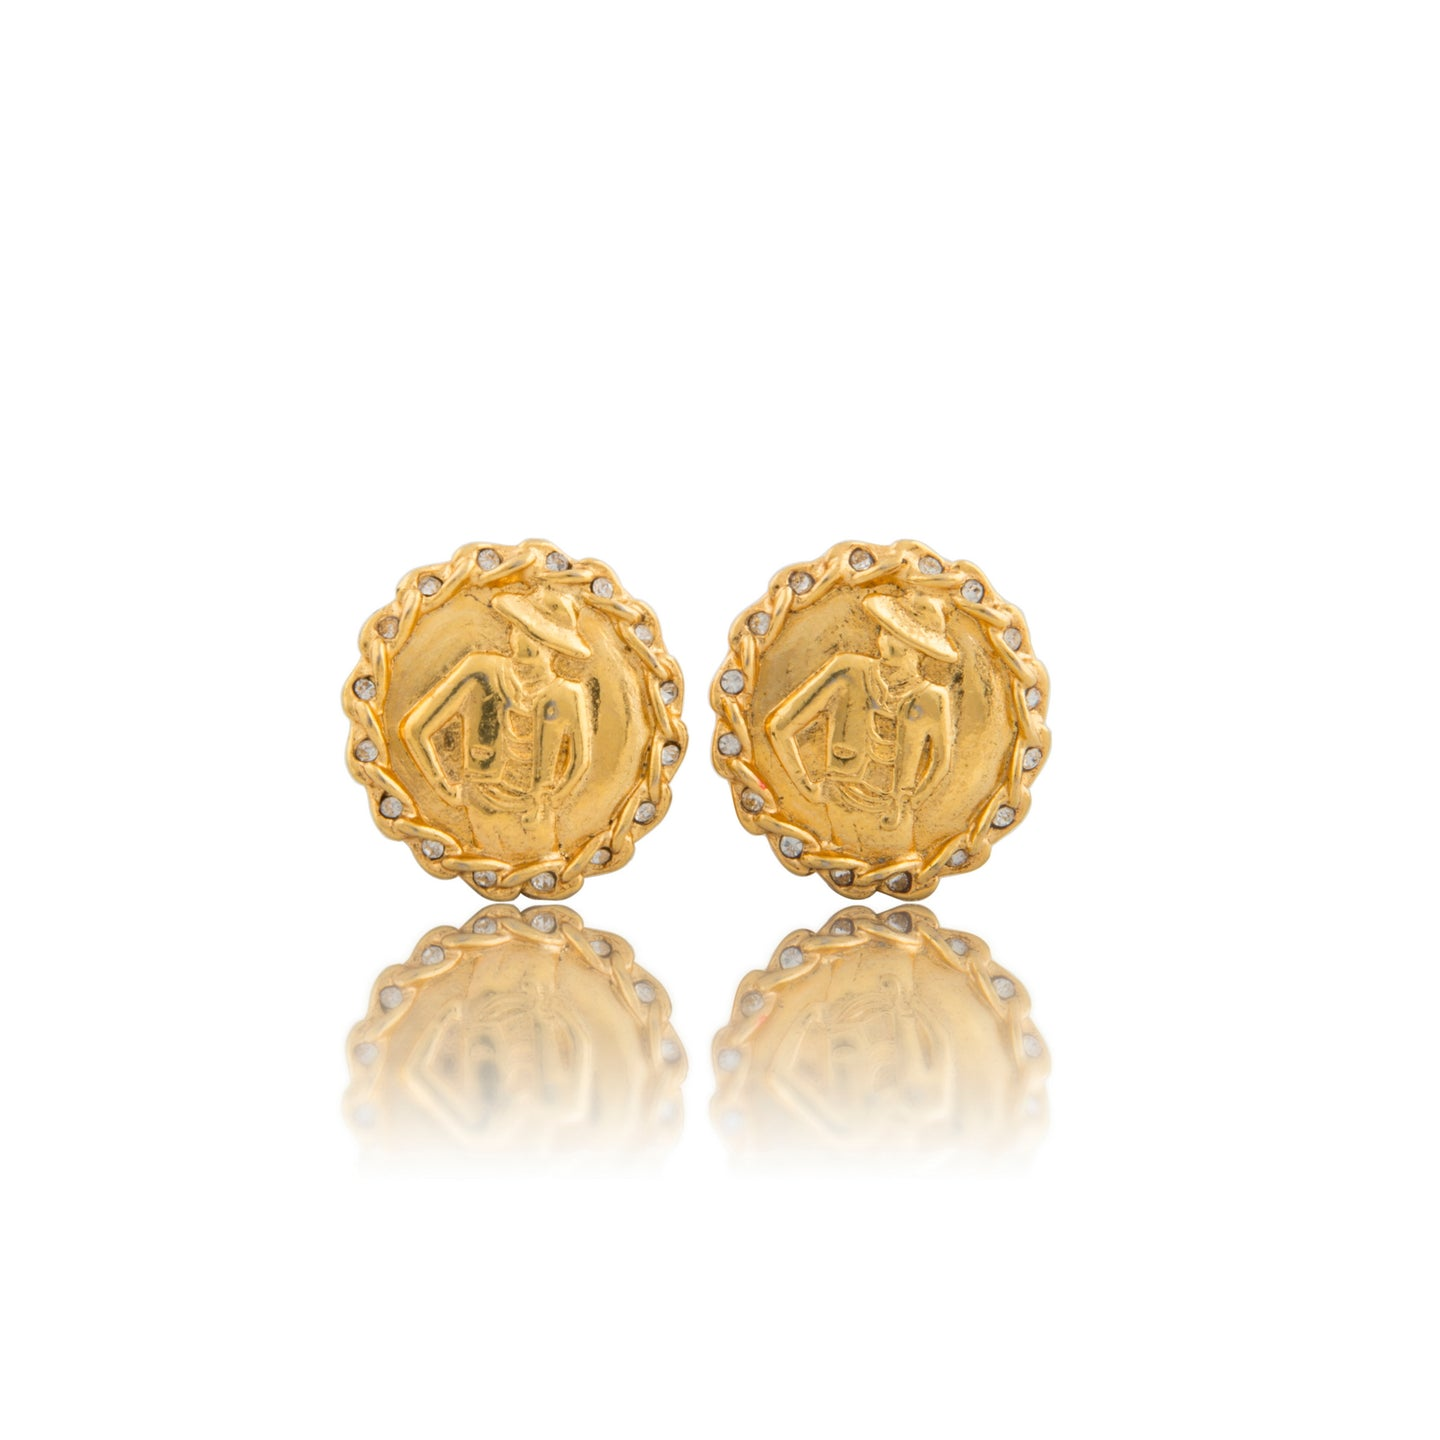 Vintage Chanel Madame Earrings